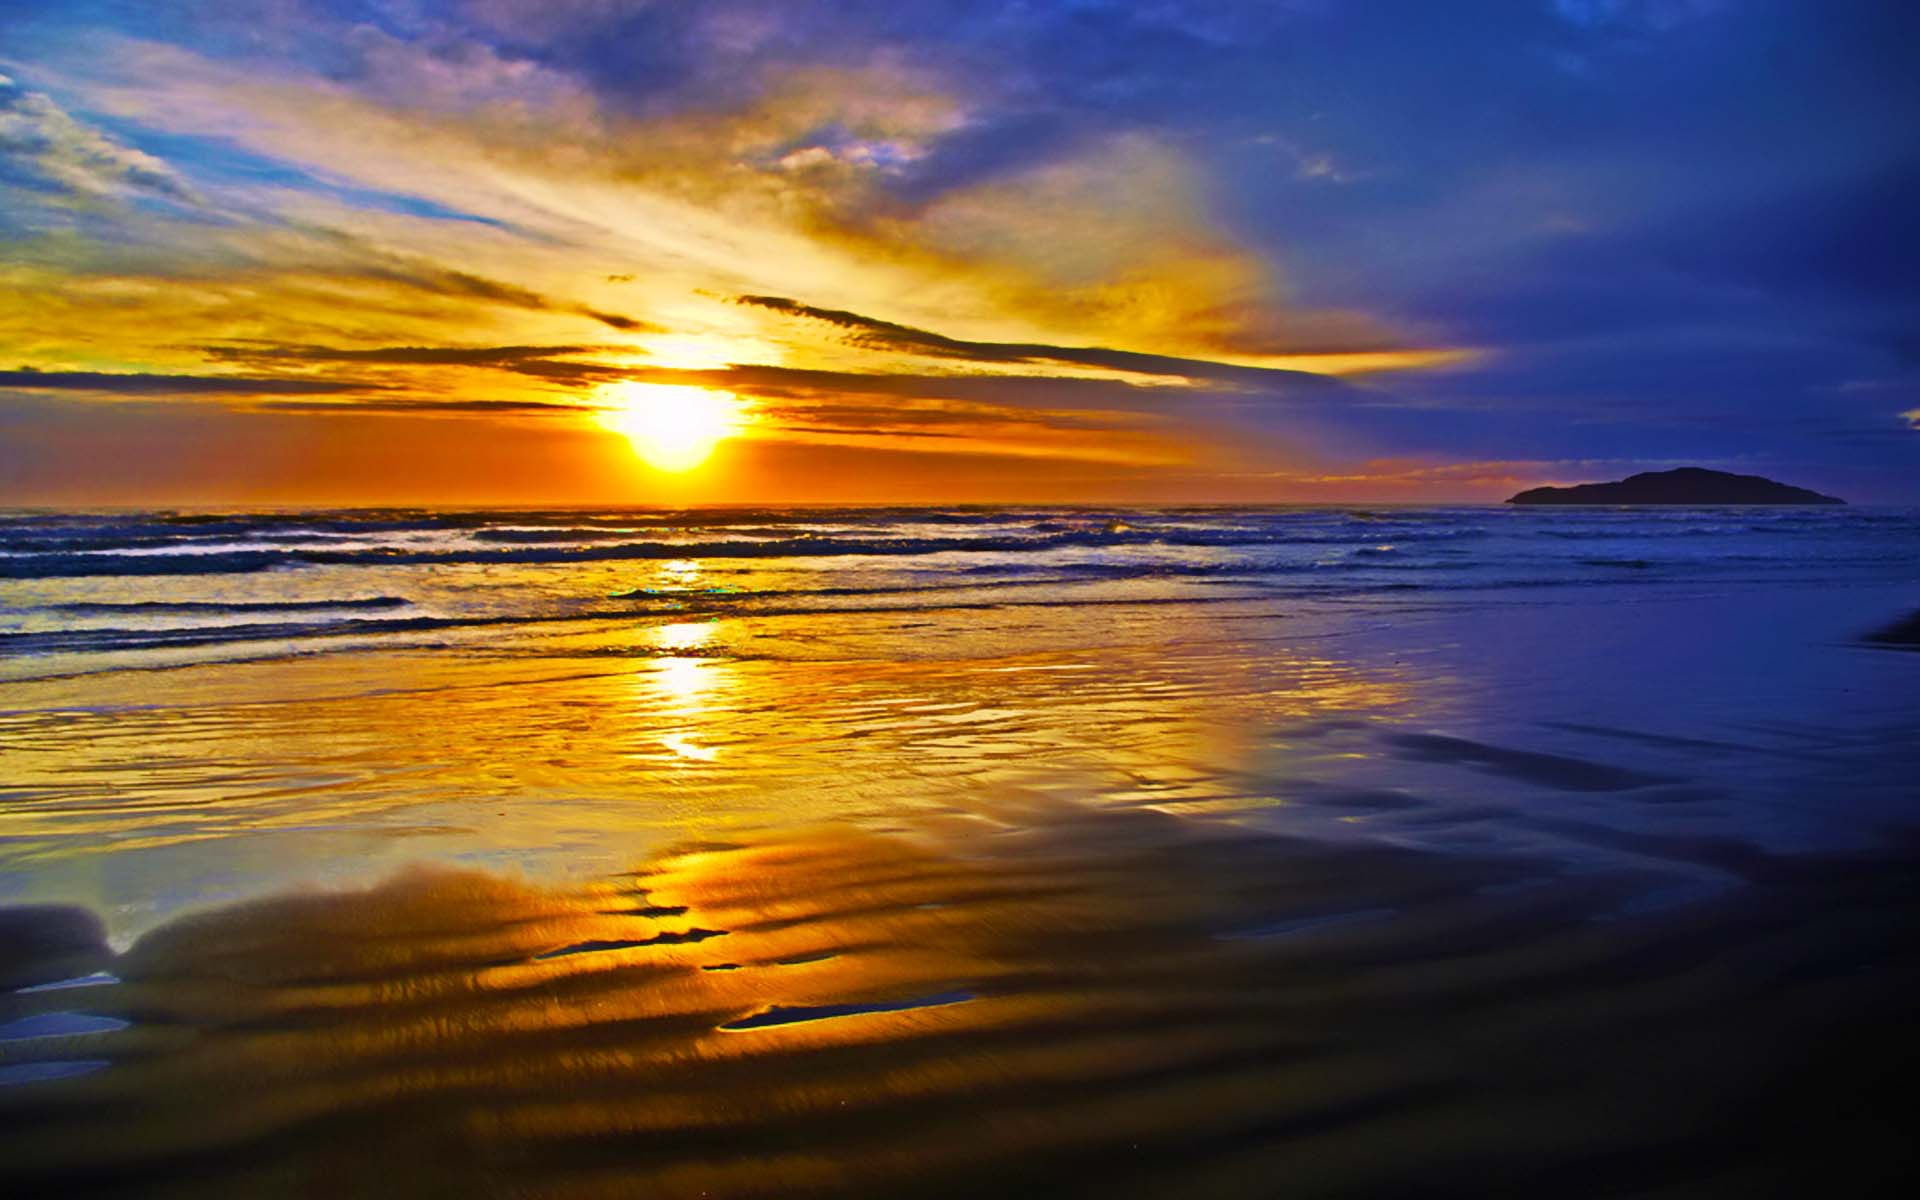 ocean sunset wallpapers images photos pictures backgrounds